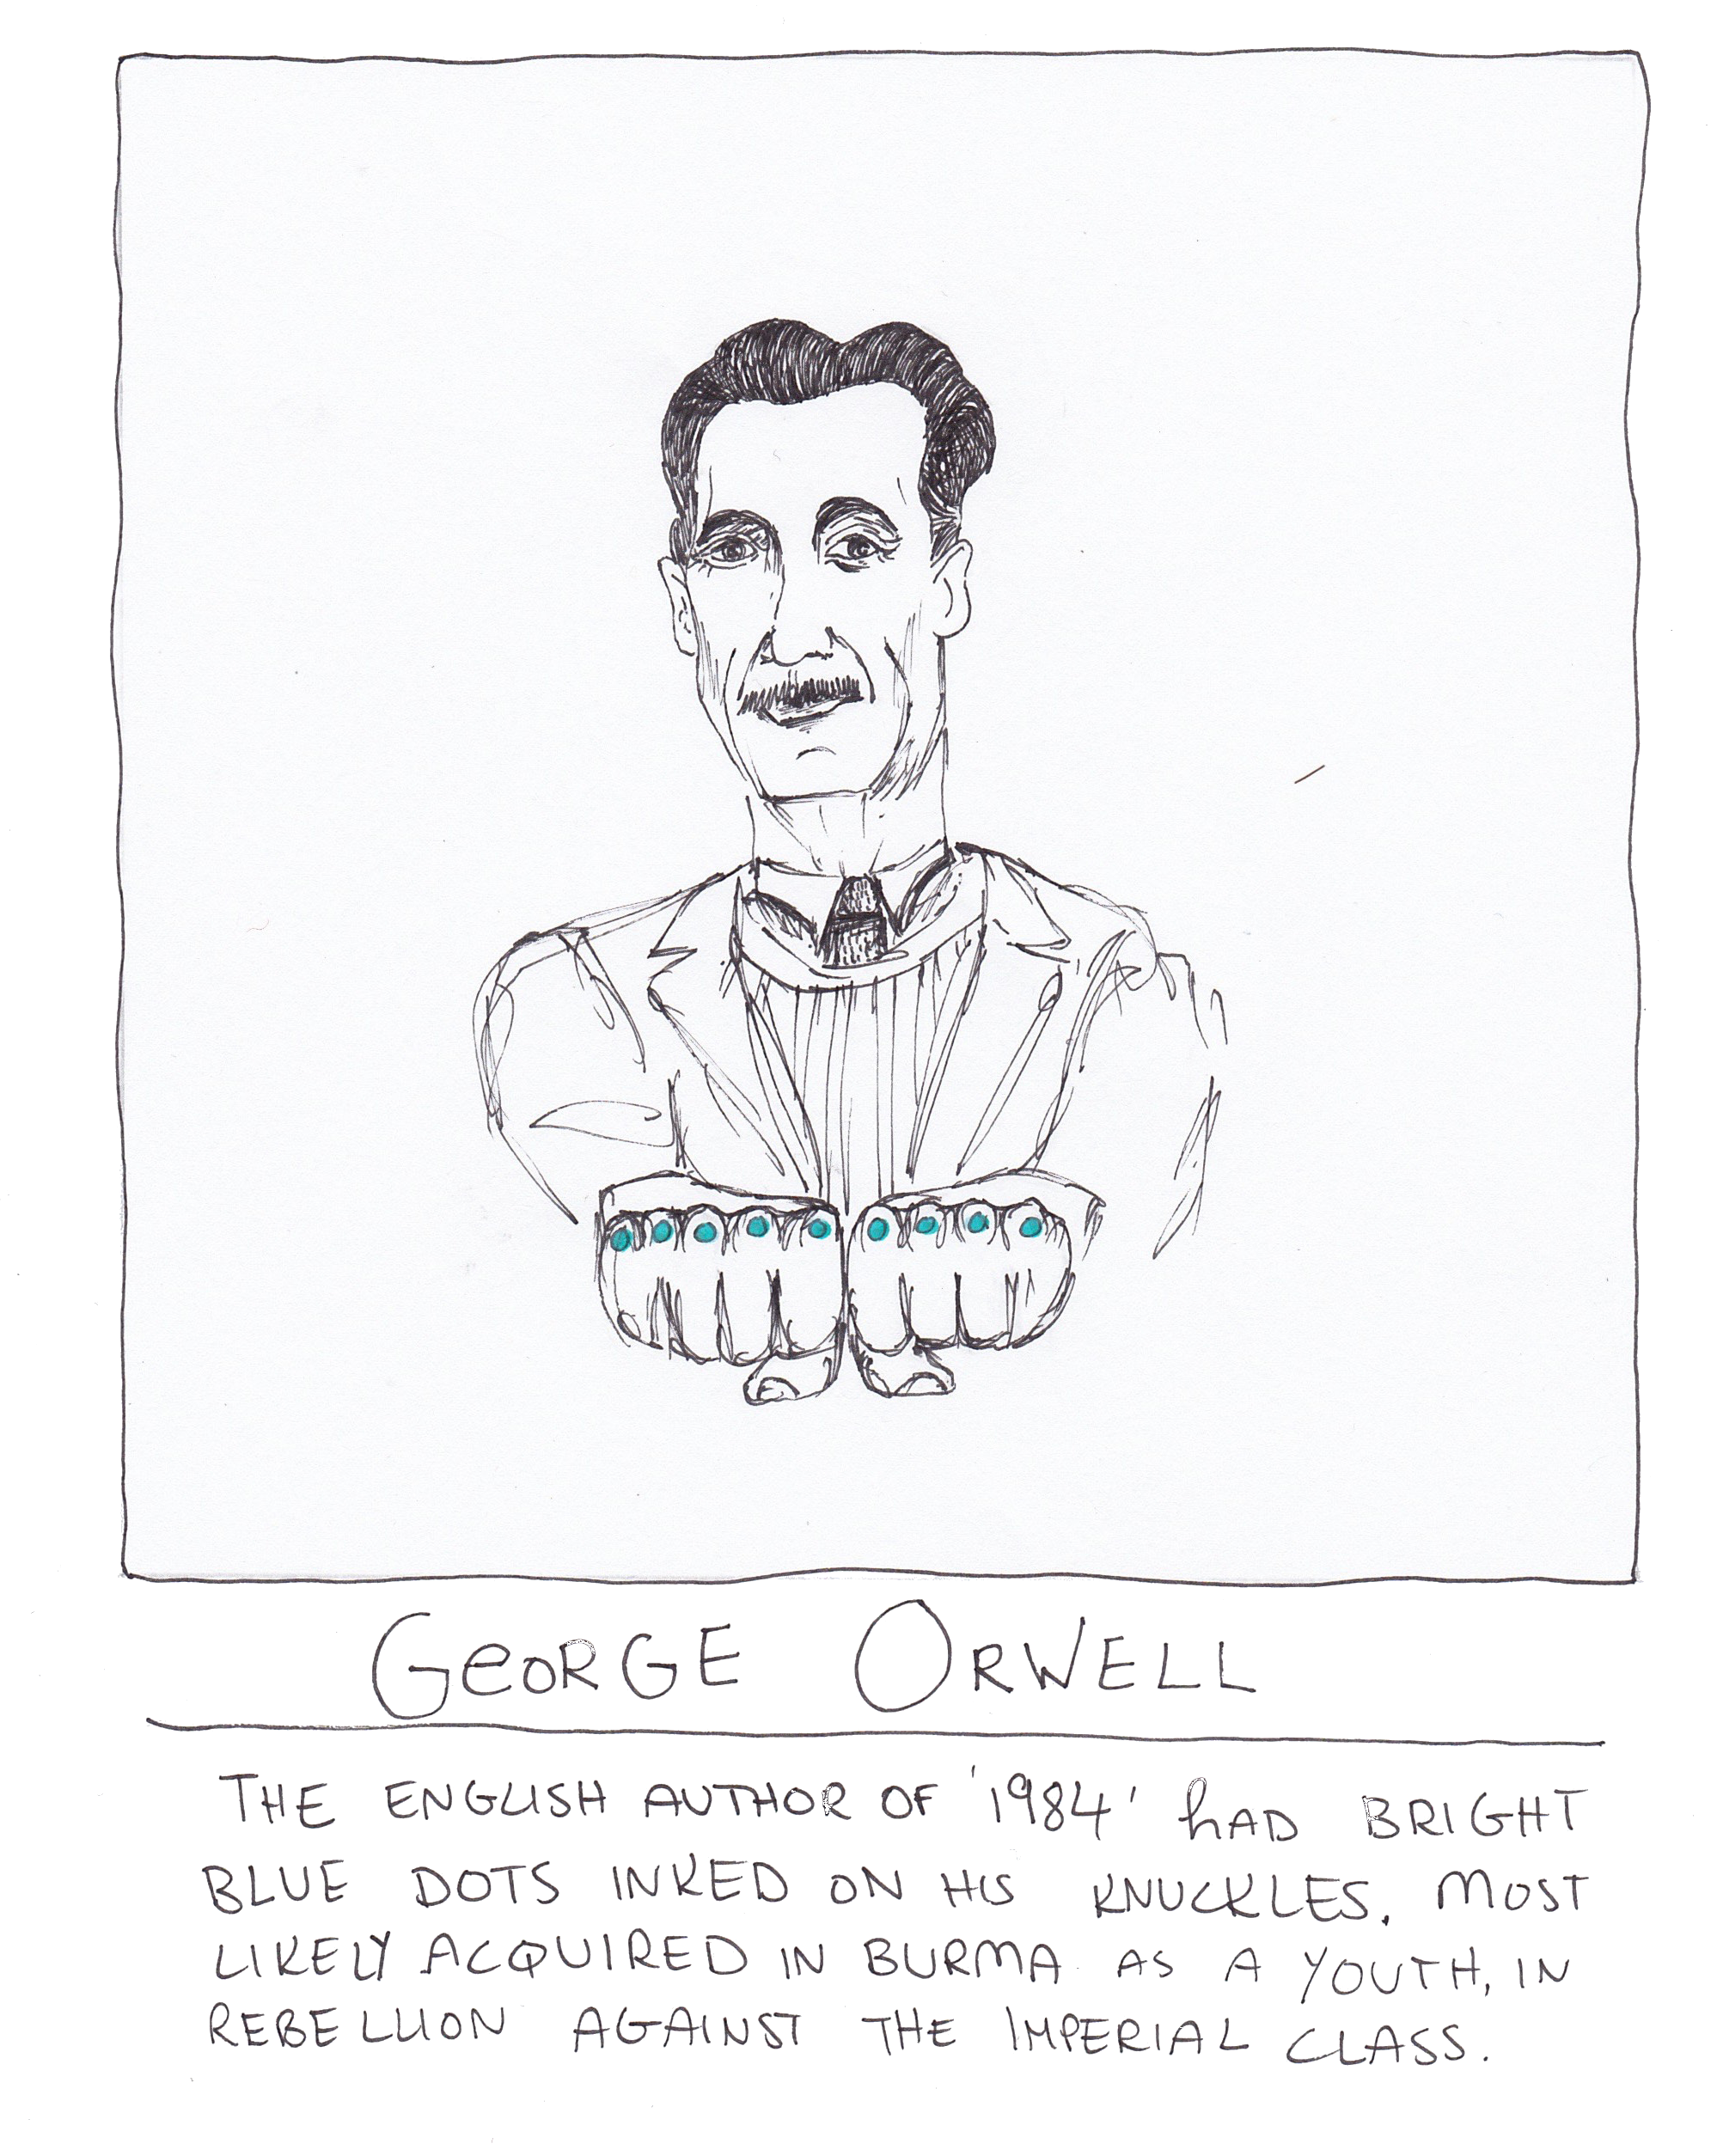 george orwell transparent bck.png